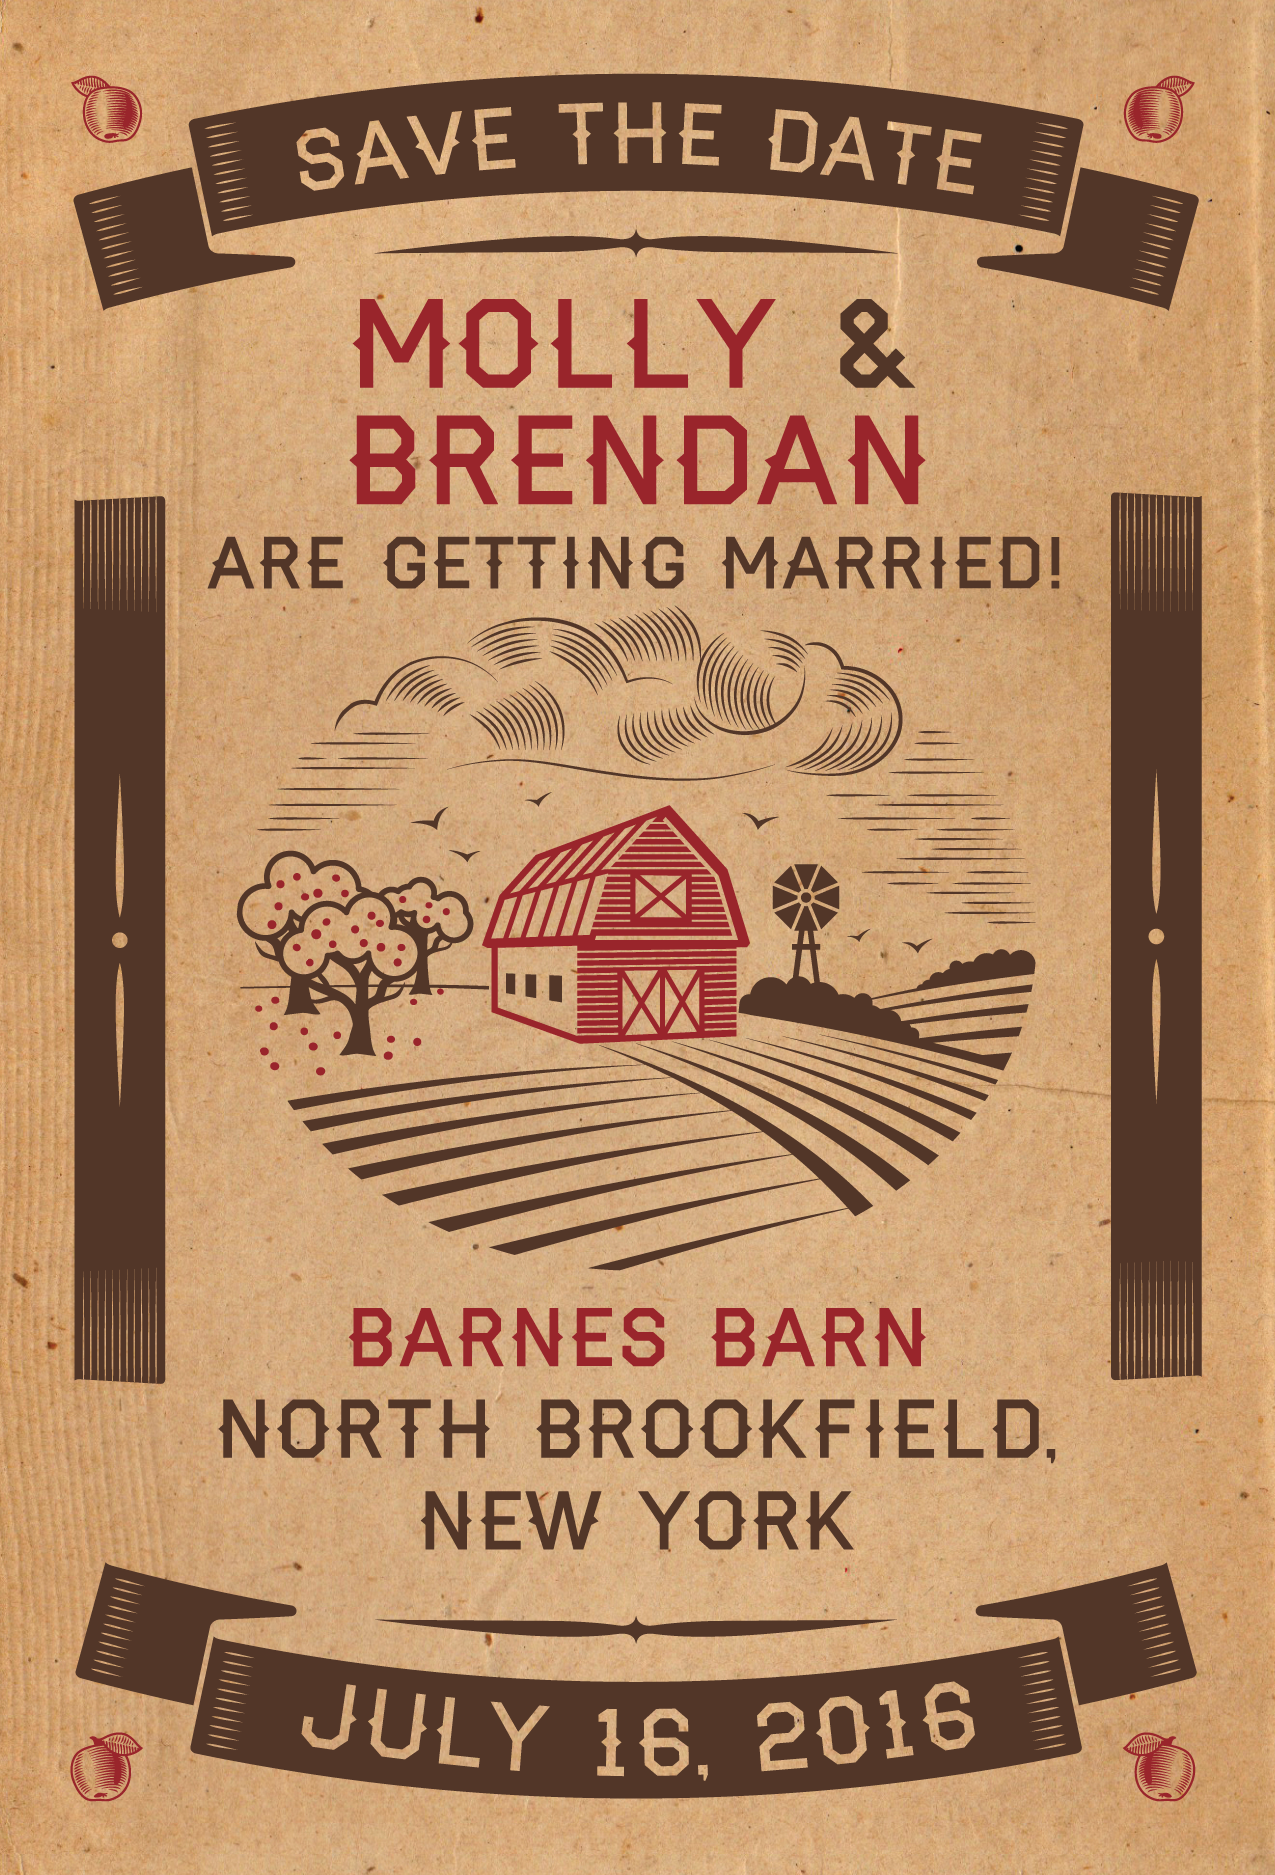 Molly & Brendan Save The Date